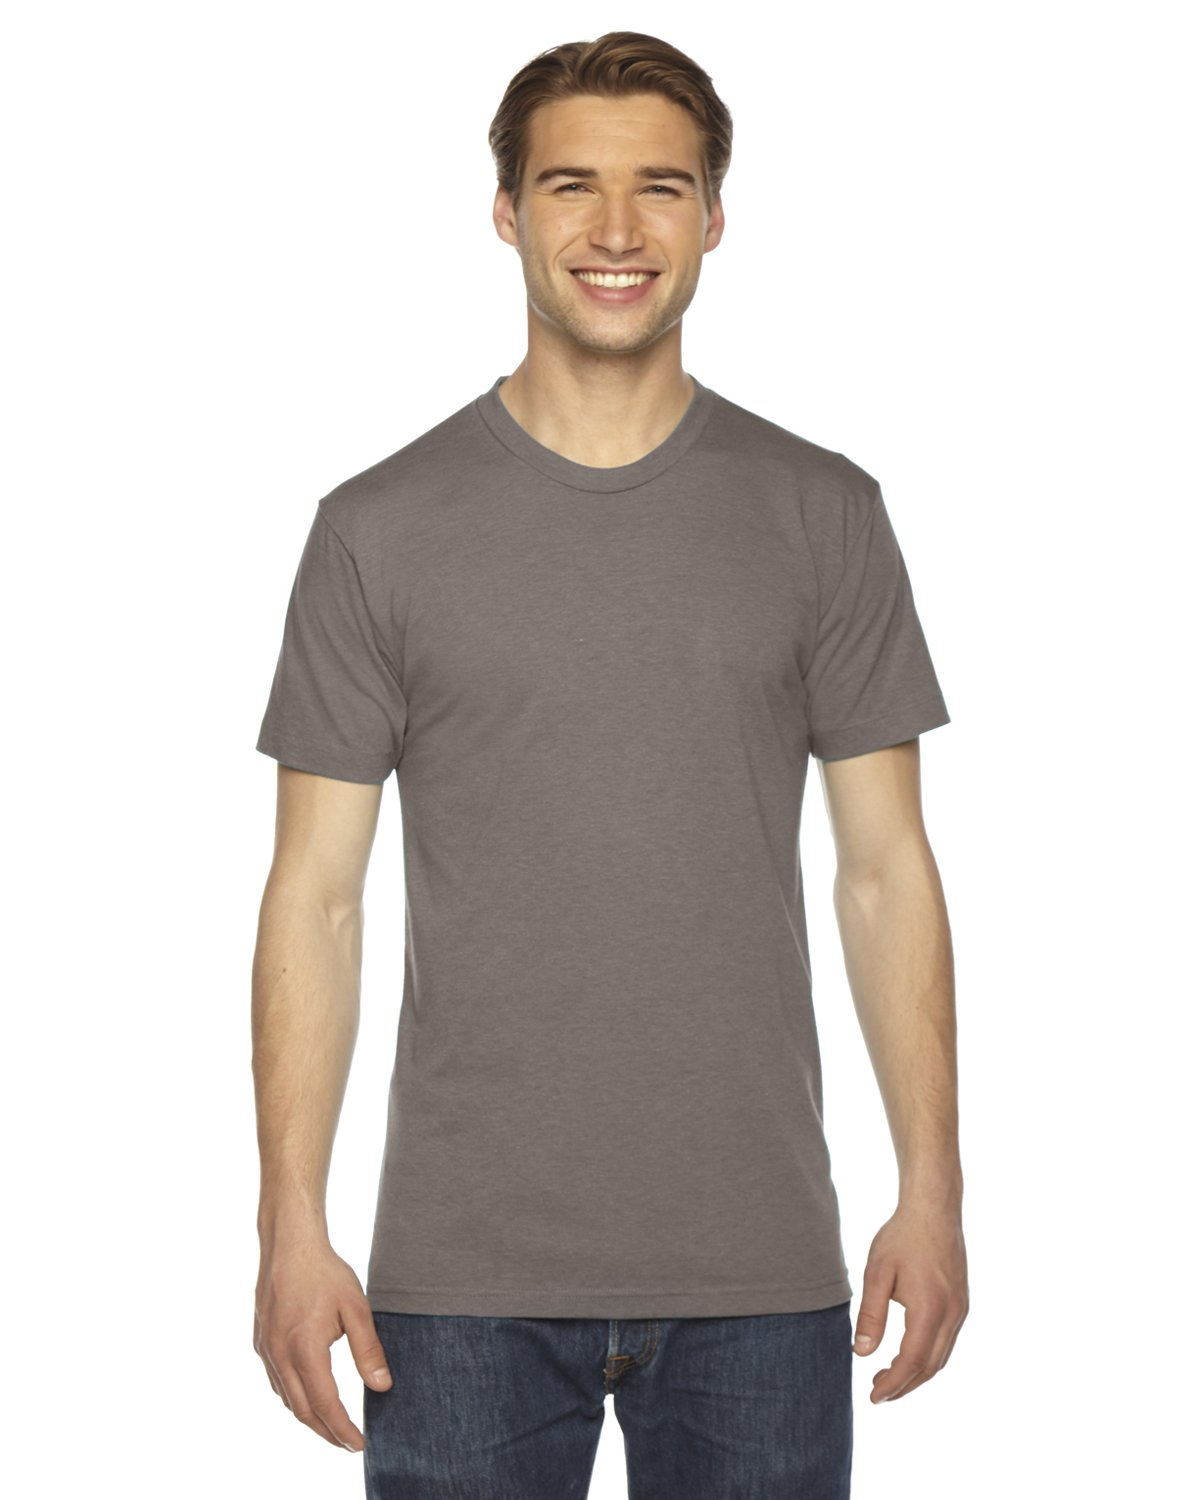 American Apparel Unisex Tri-Blend Short Sleeve Track T-Shirt (L) (Tri-Coffee)